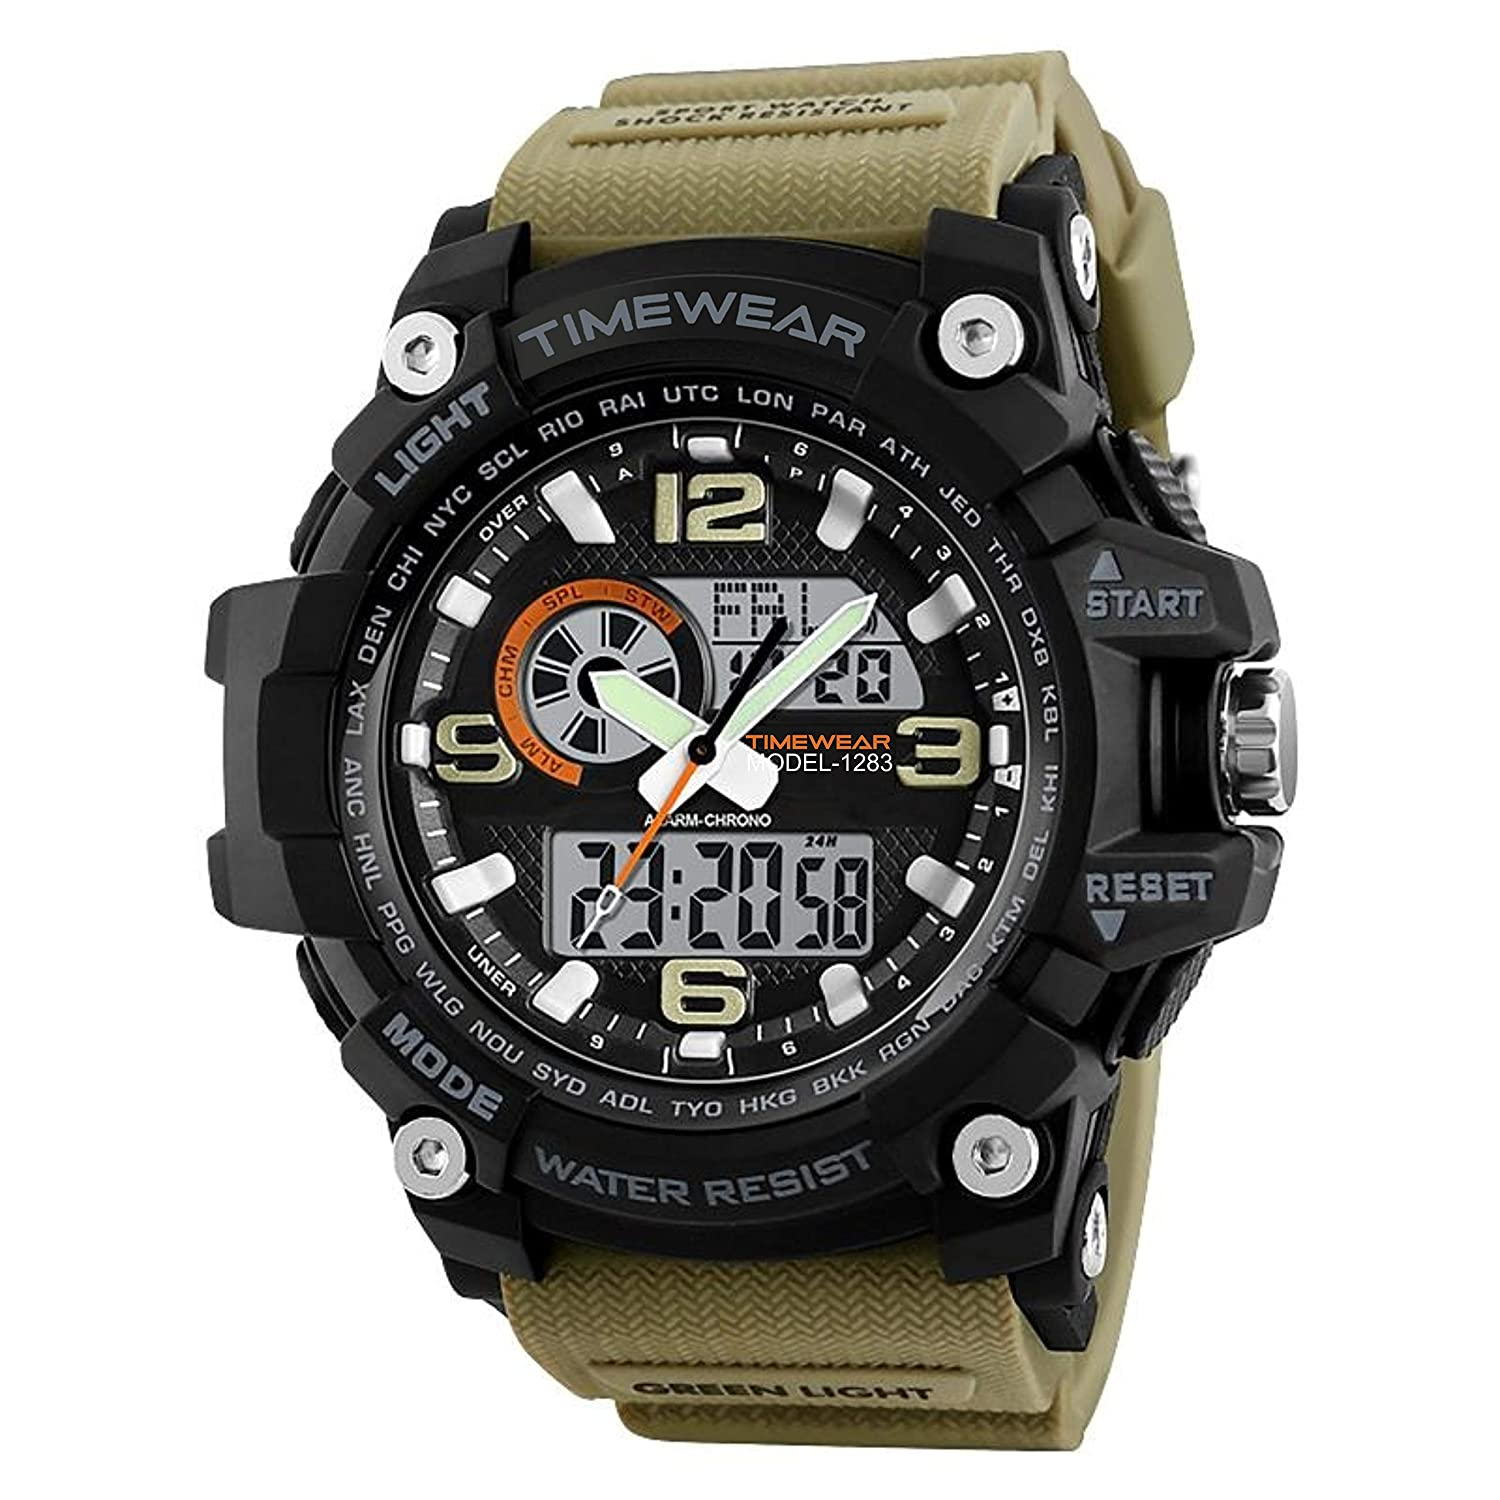 Timewear Military Series Analogue Digital Black Dial Watch For Men & Boys@Rs.699